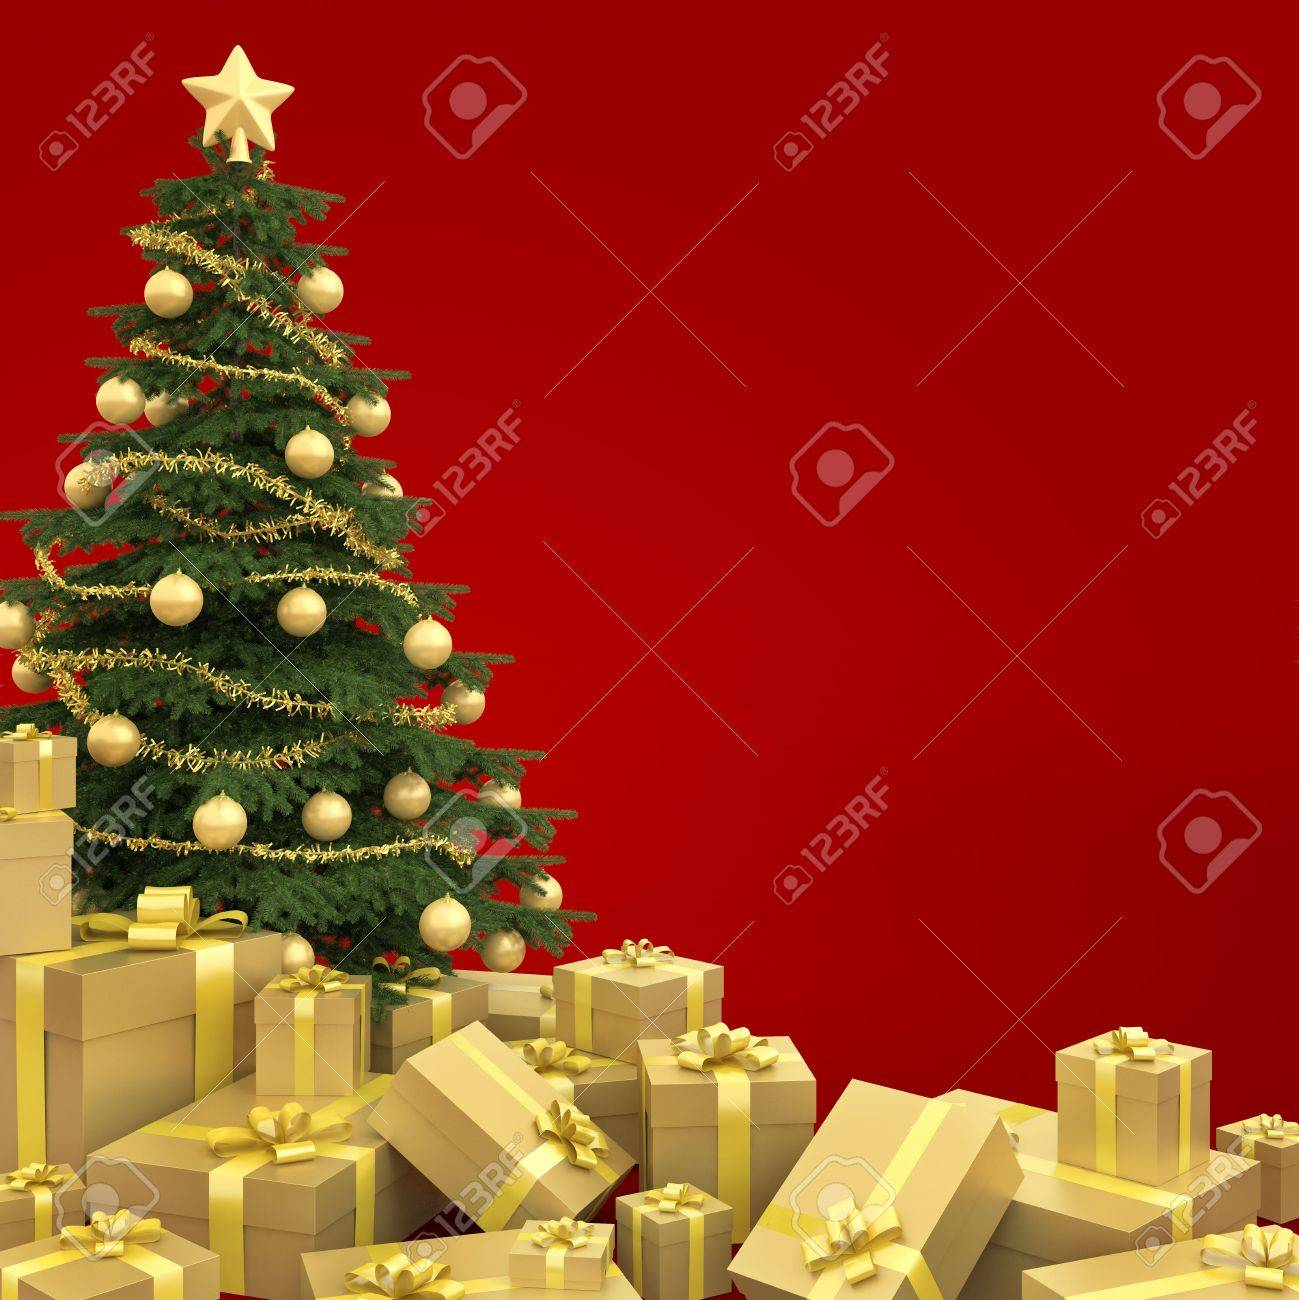 Golden decorated christmas tree with many presents isolated against a red background Stock Photo - 7882207